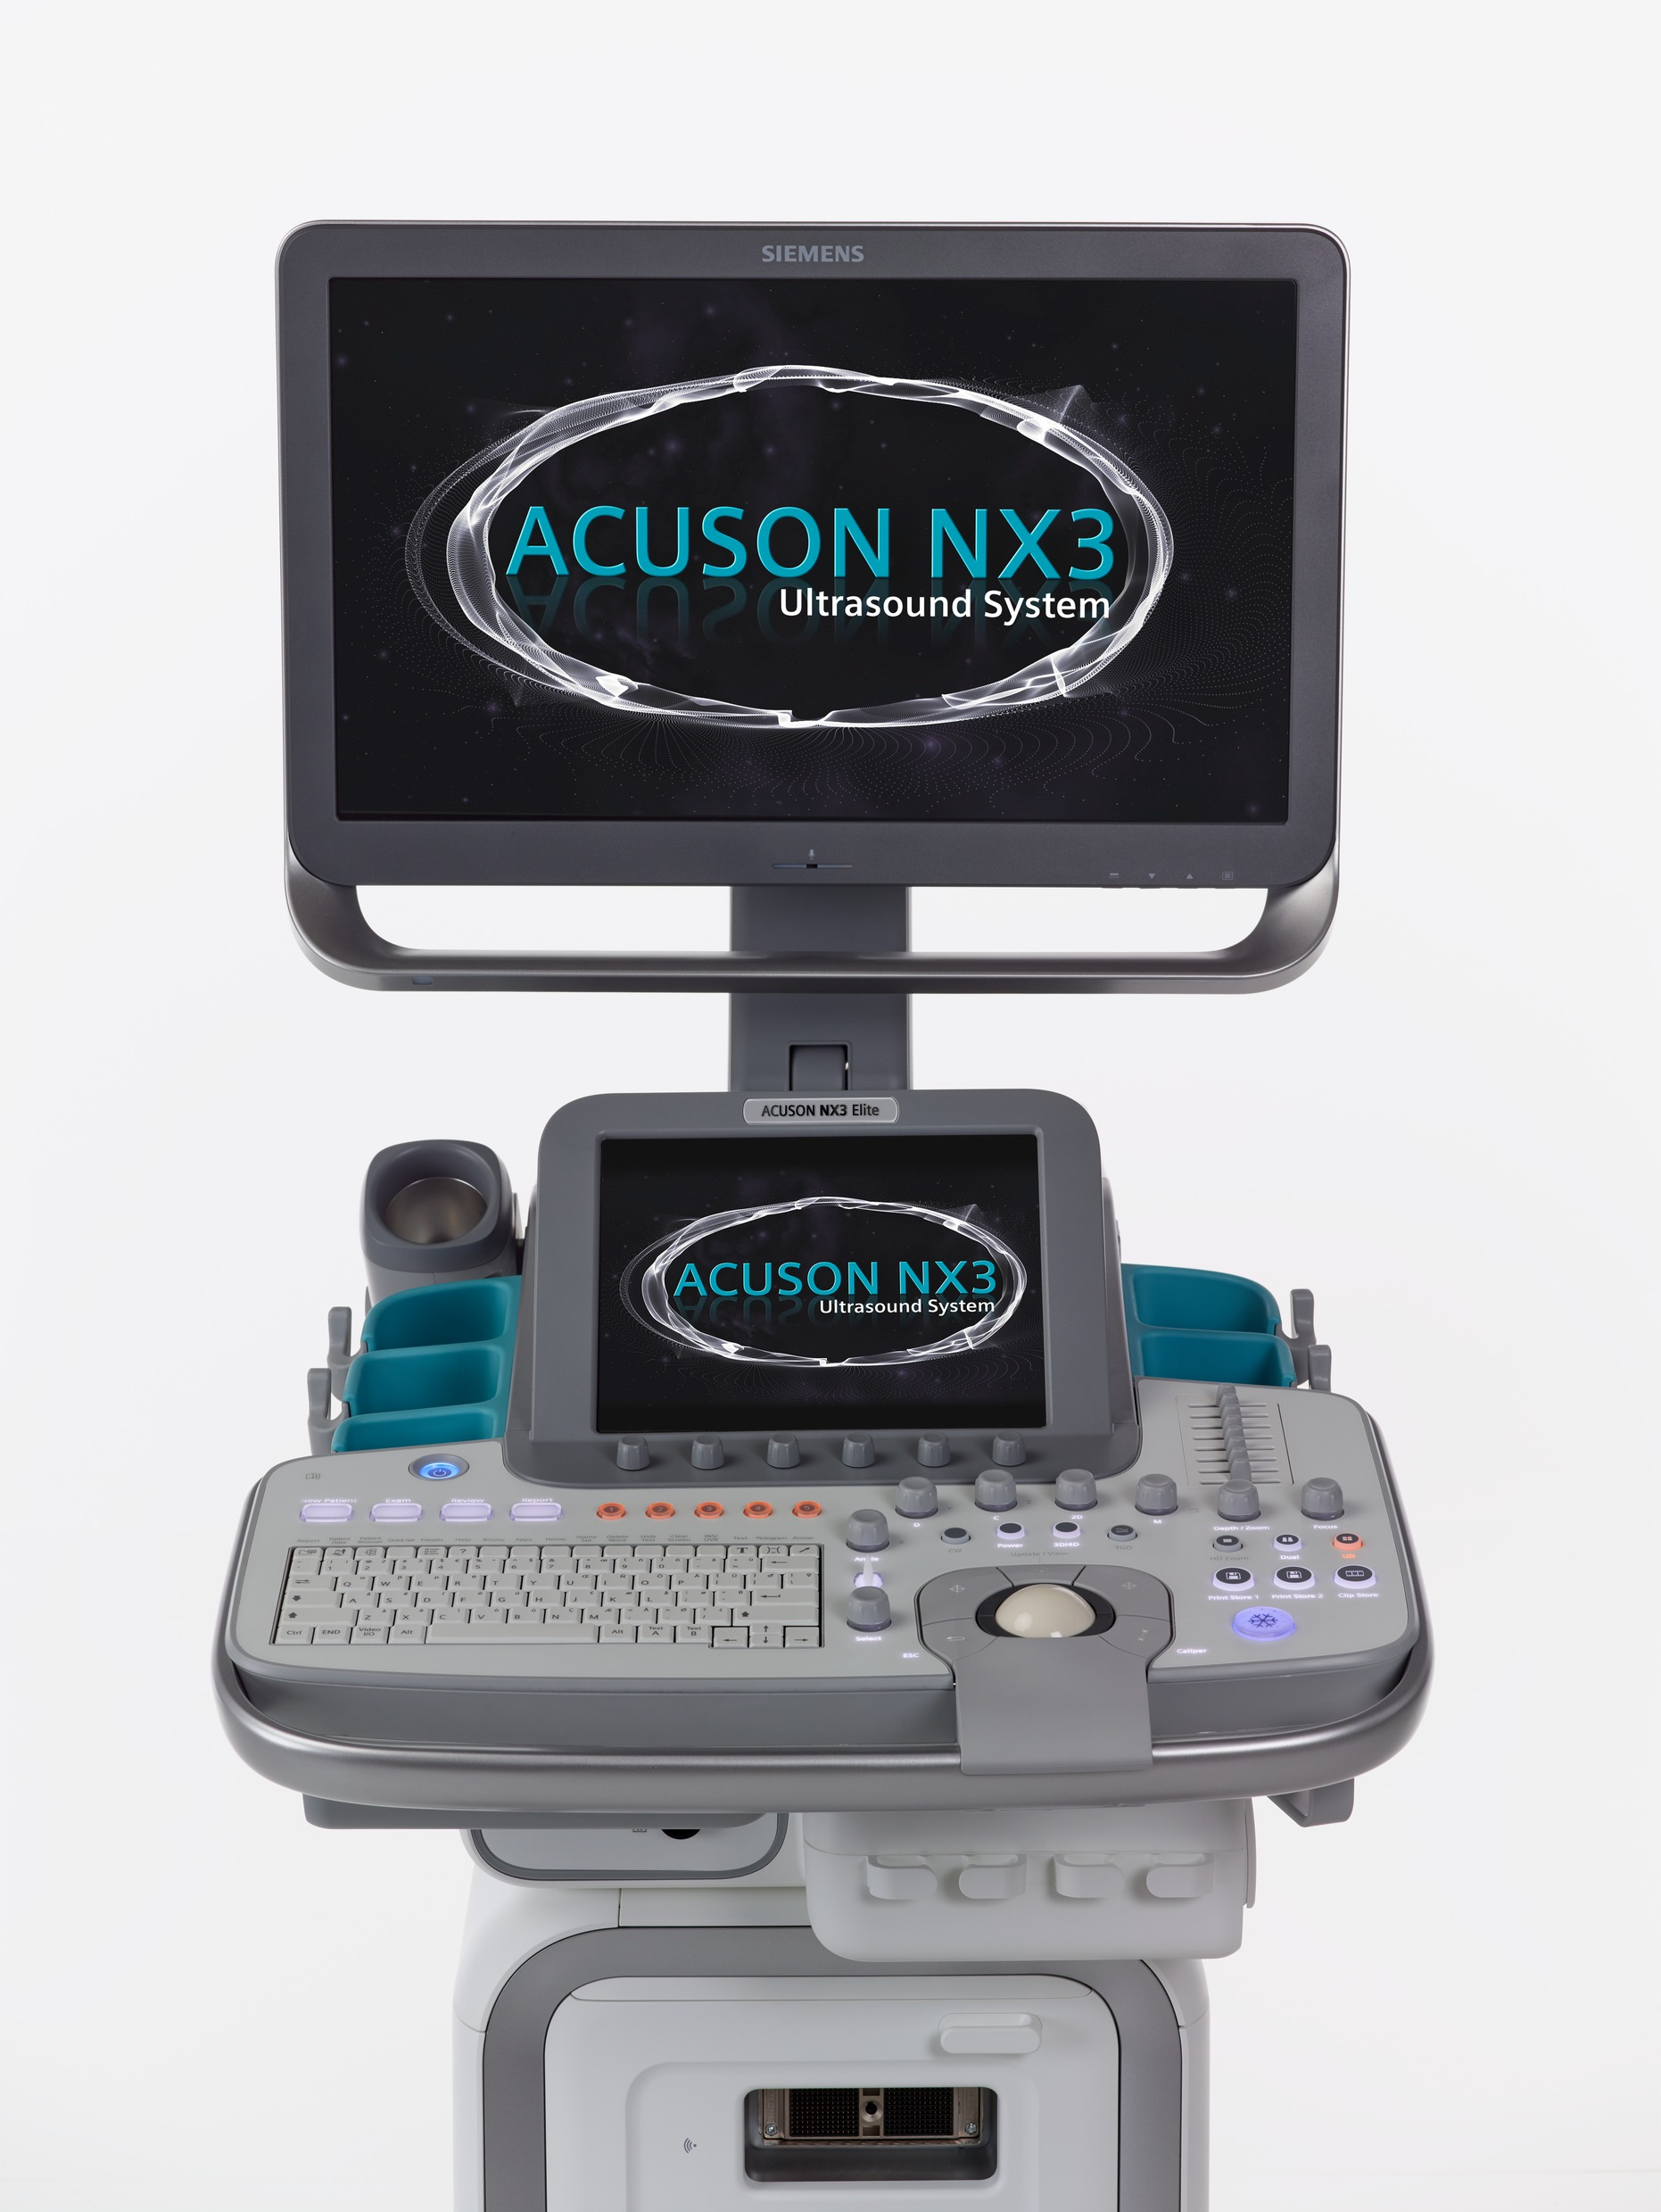 Acuson NX3 Ultrasound Machine